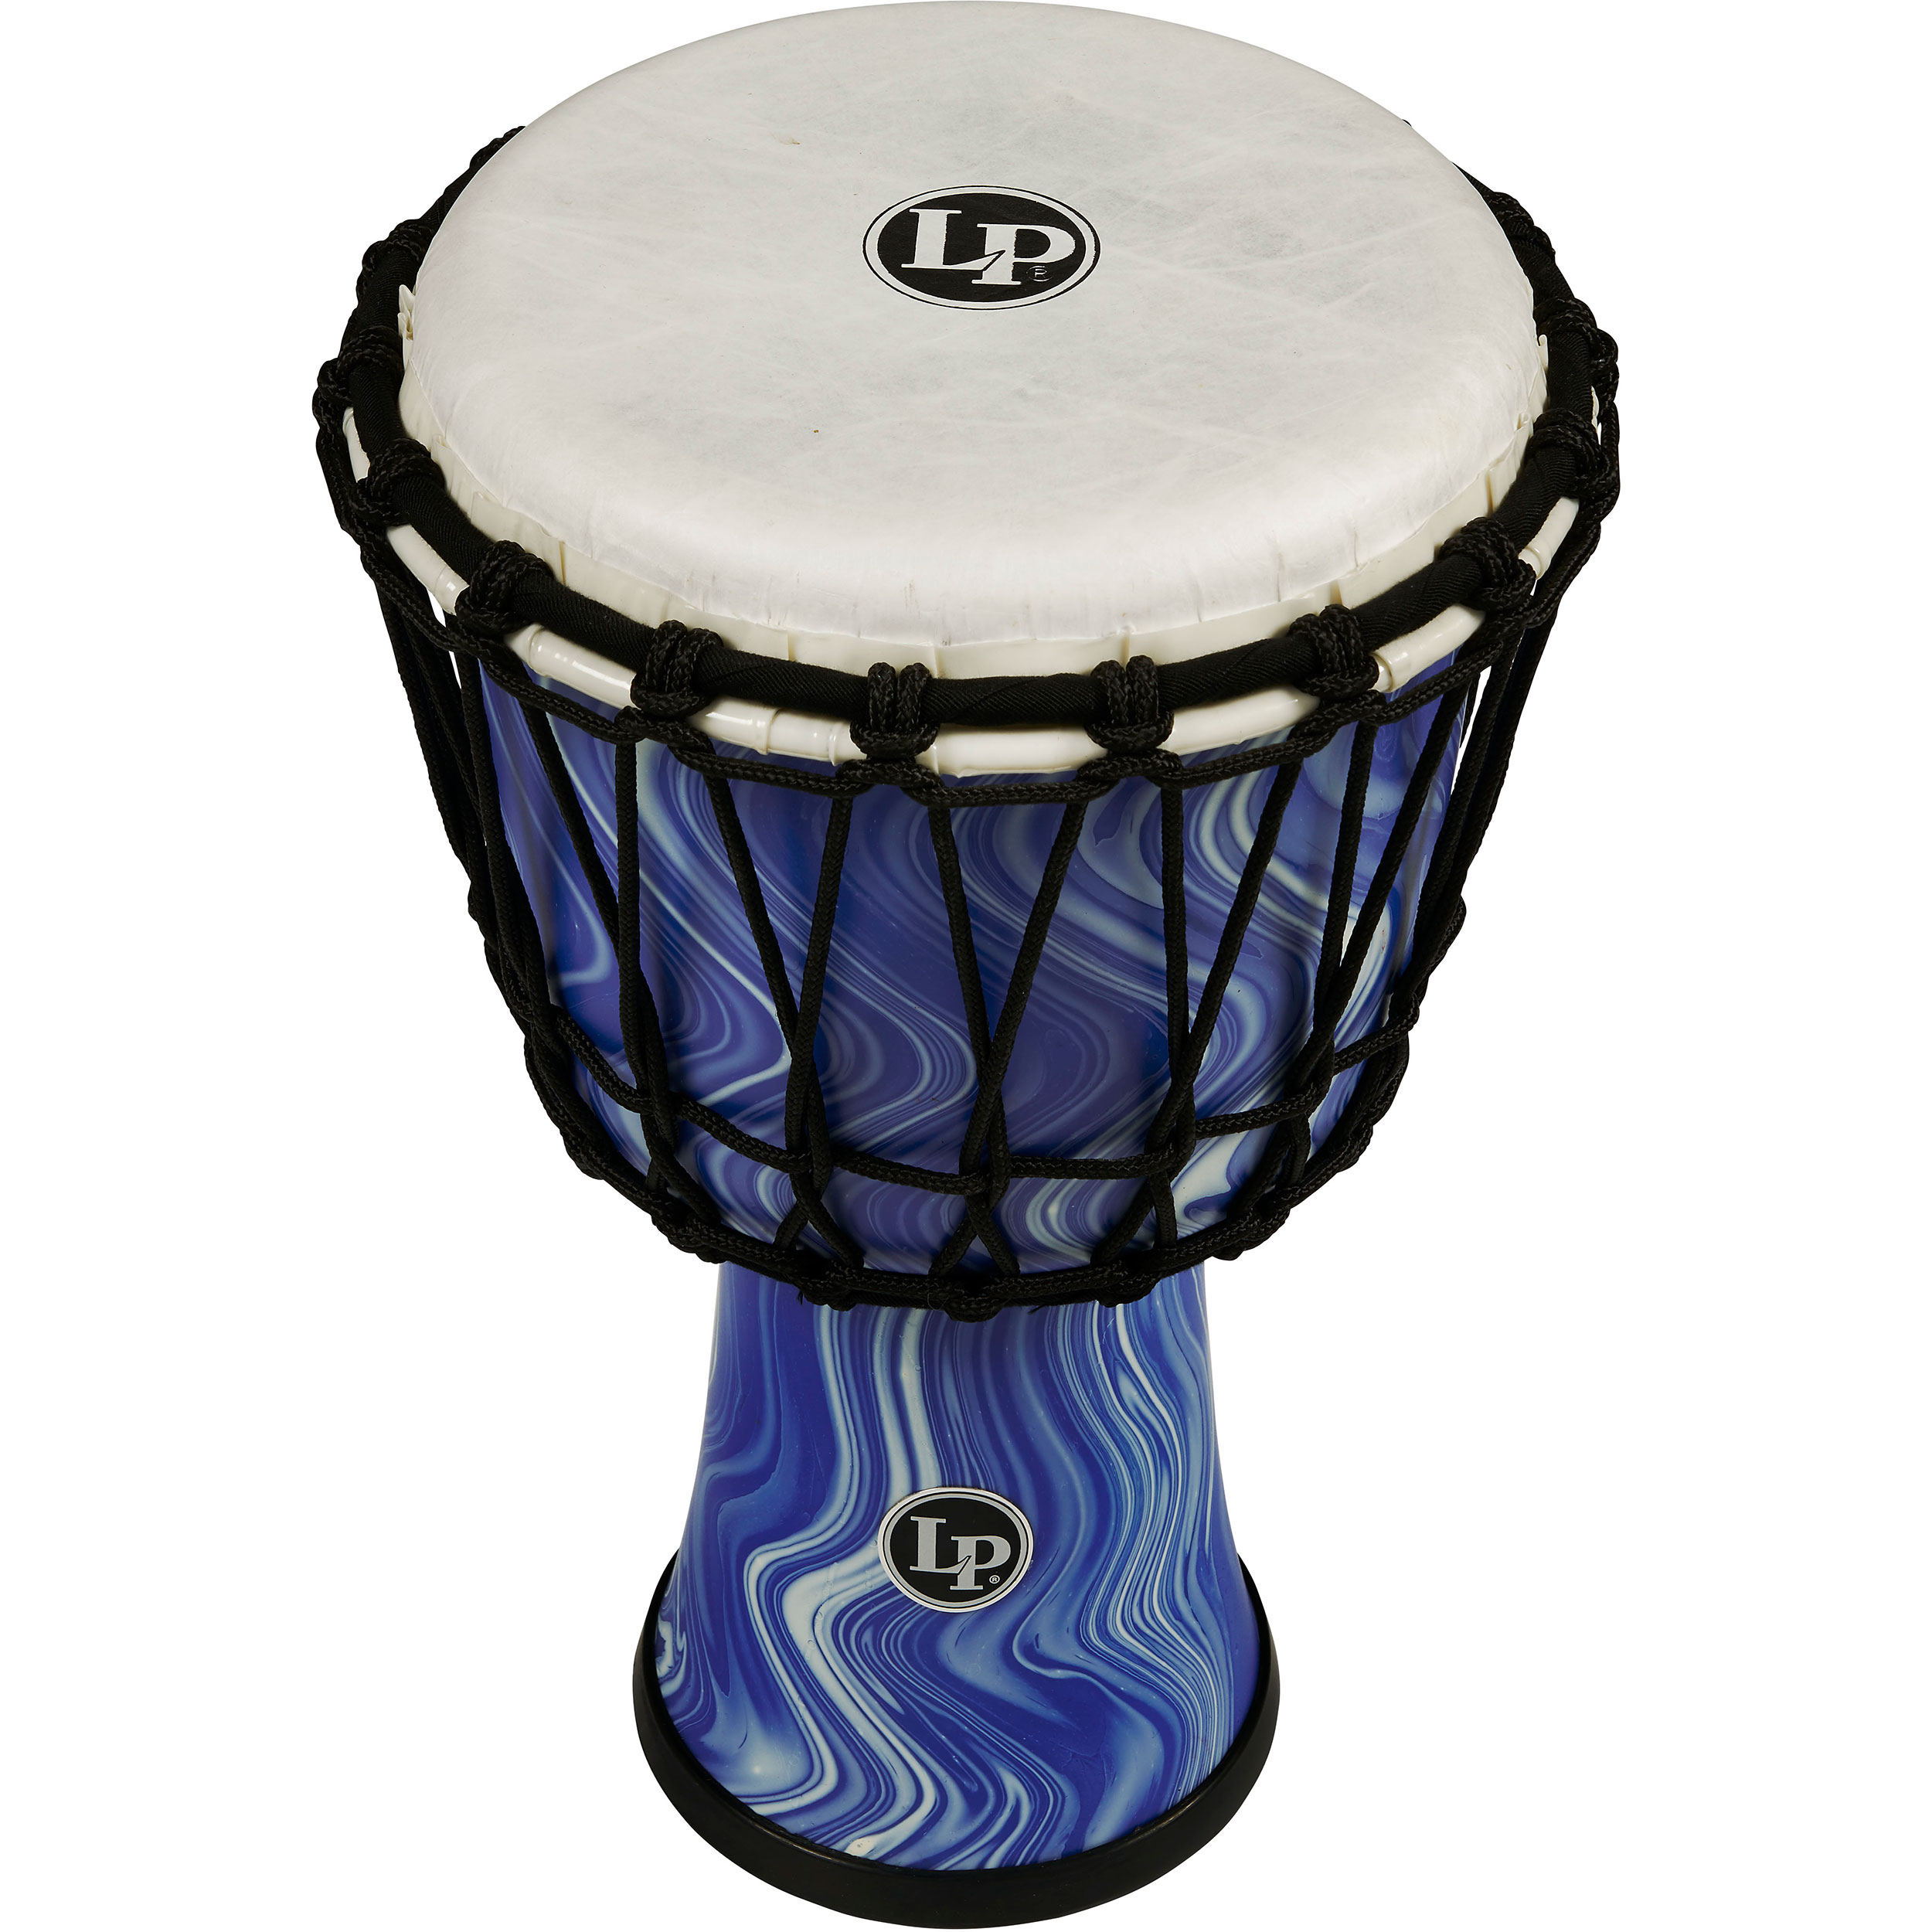 "LP 7"" Rope Tuned Circle Djembe in Blue Marble"